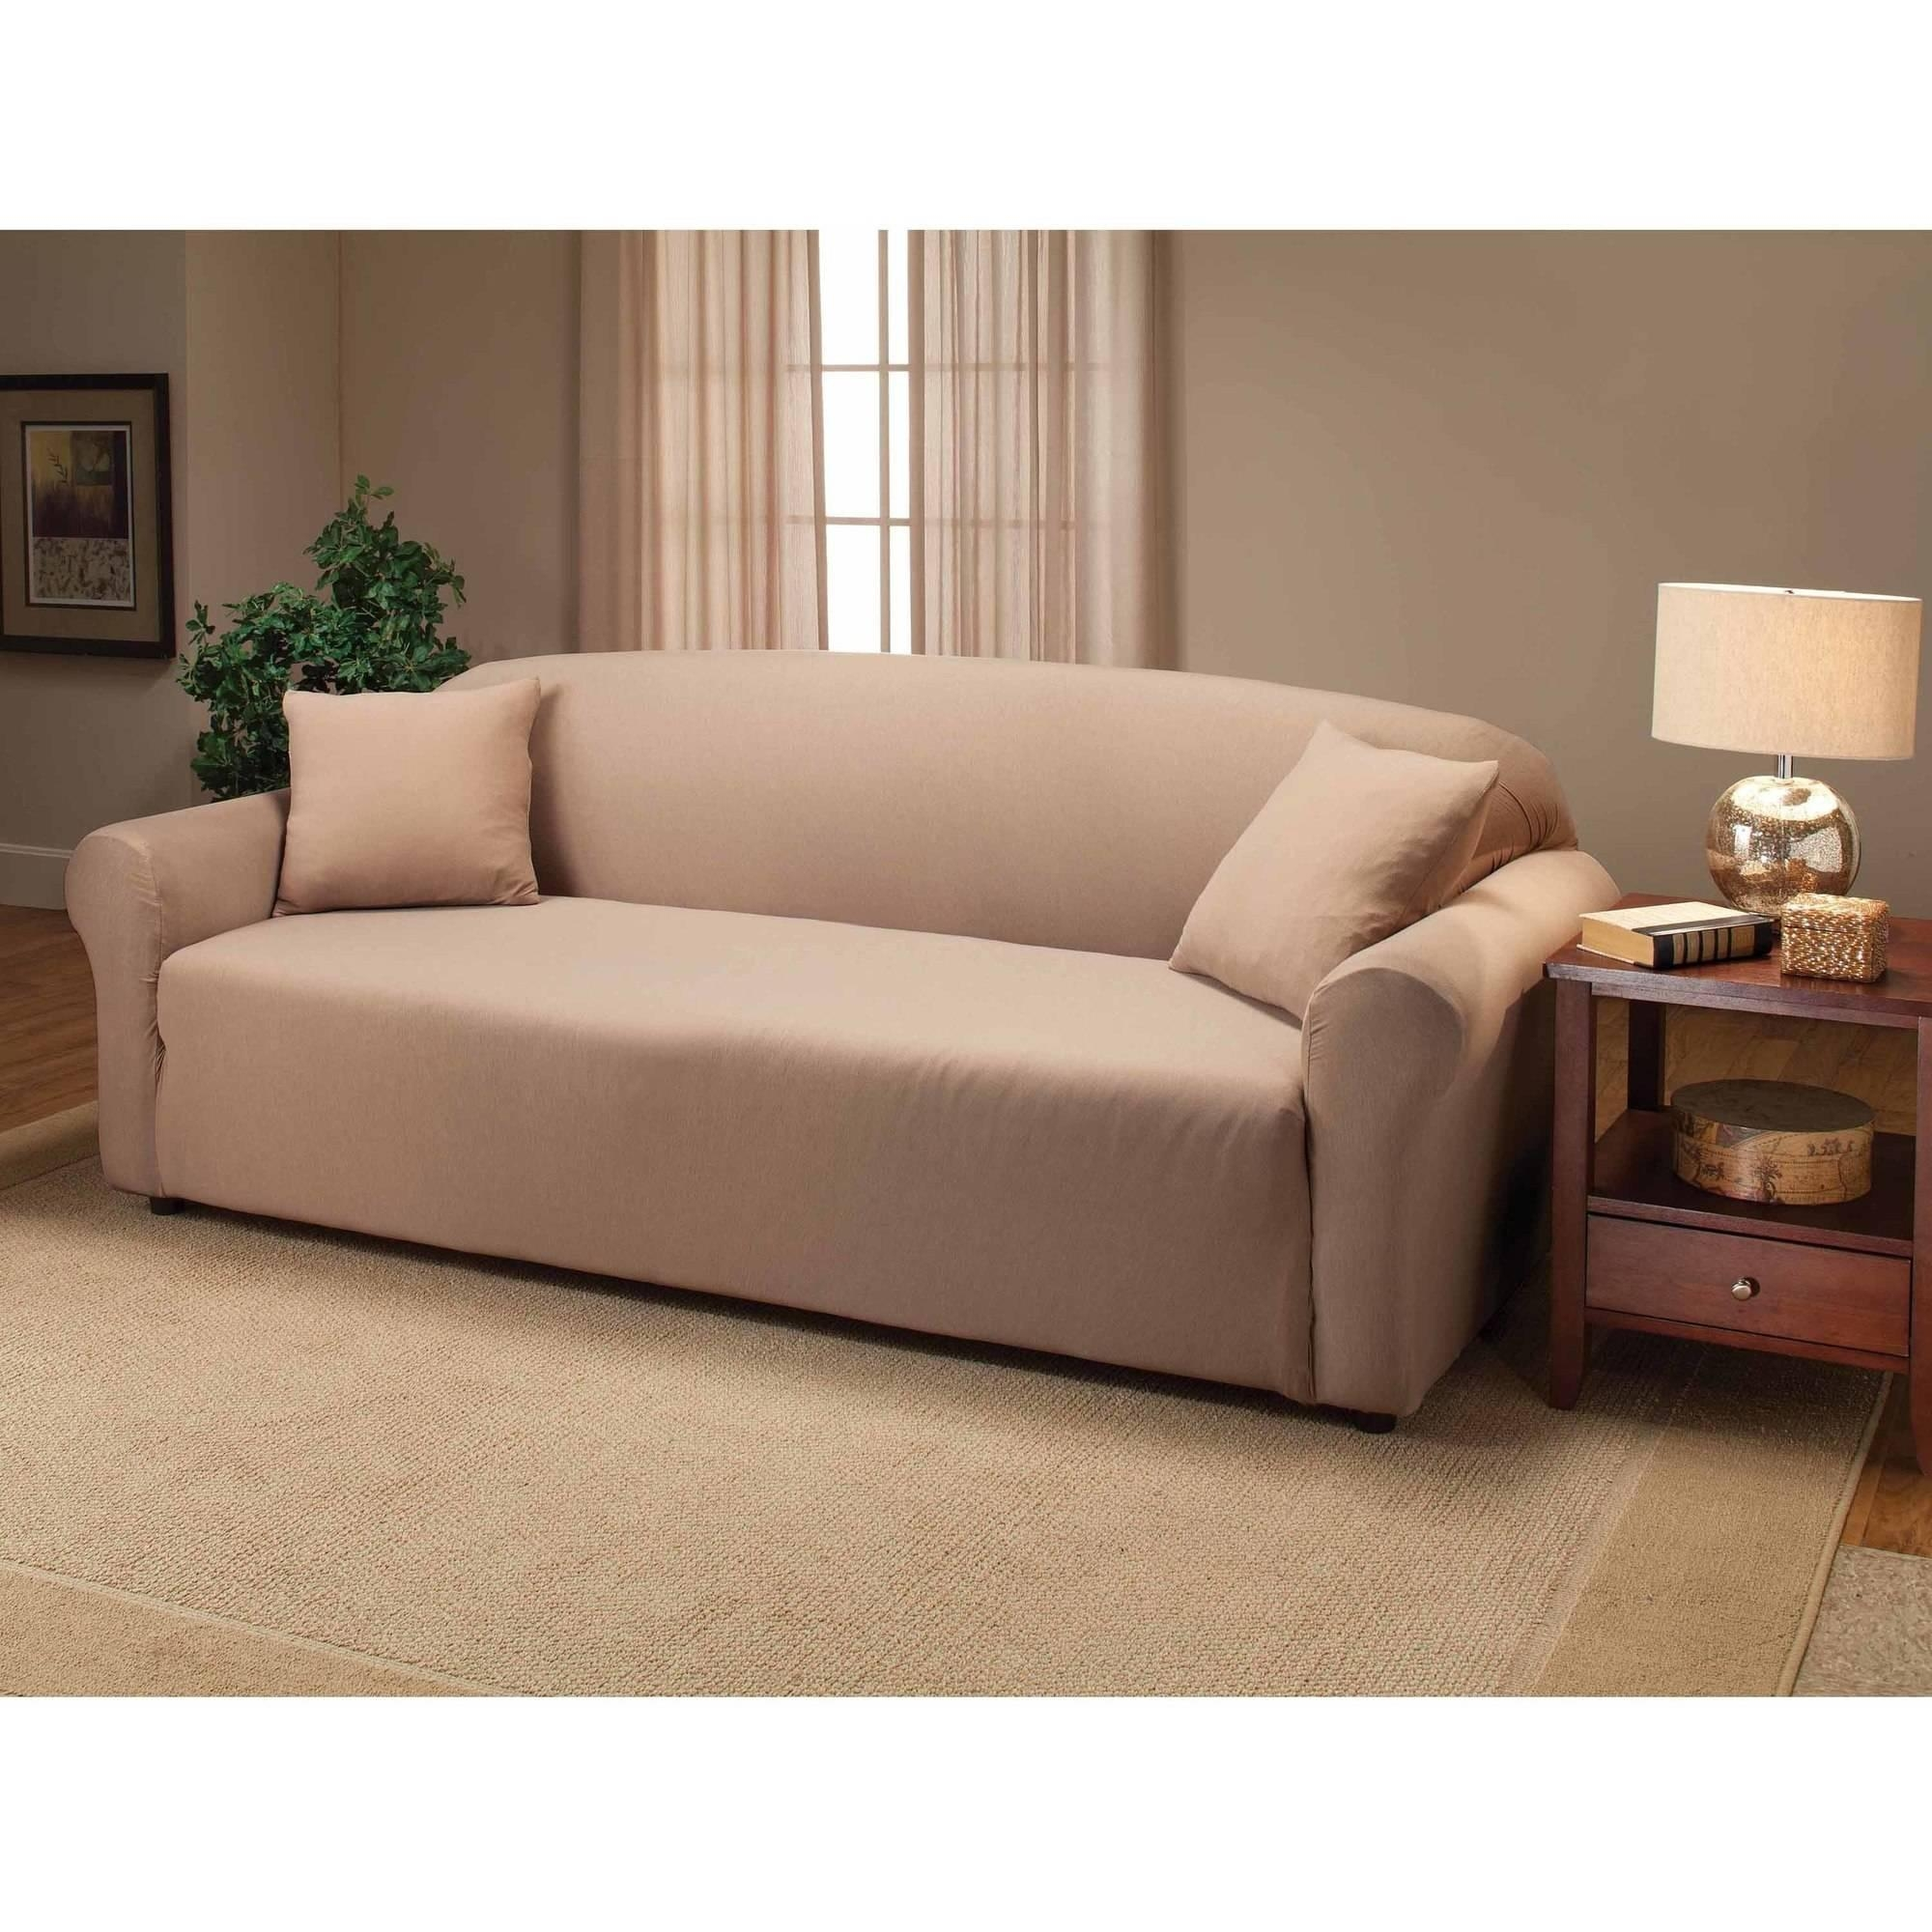 Furniture: Couch Covers At Walmart To Make Your Furniture Stylish Intended For Slipcover For Recliner Sofas (View 13 of 20)